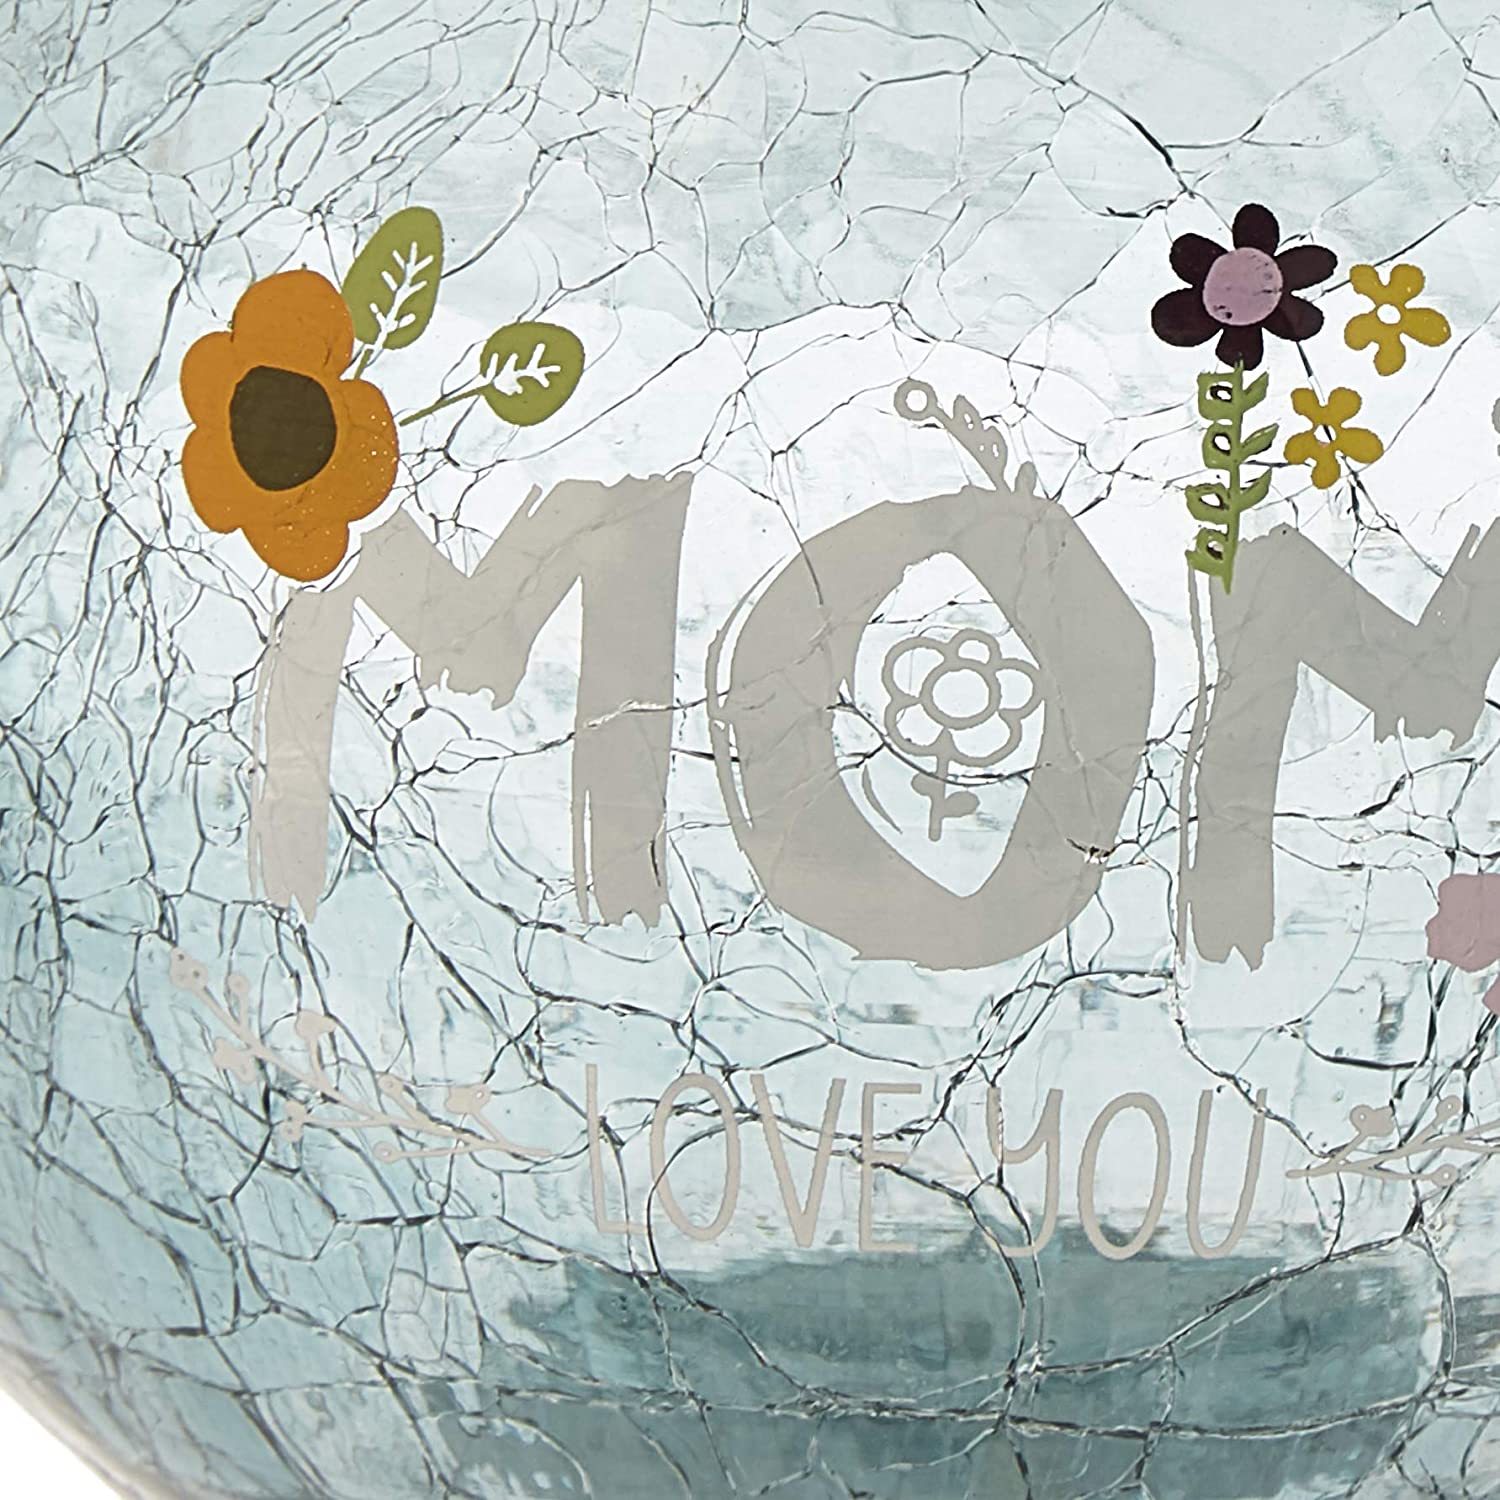 Pavilion Gift Moms are The People who Know us The Best /& Love us The Most Cement Gold Candle Holder Home Decor 4.75 Pavilion Gift Company 42108